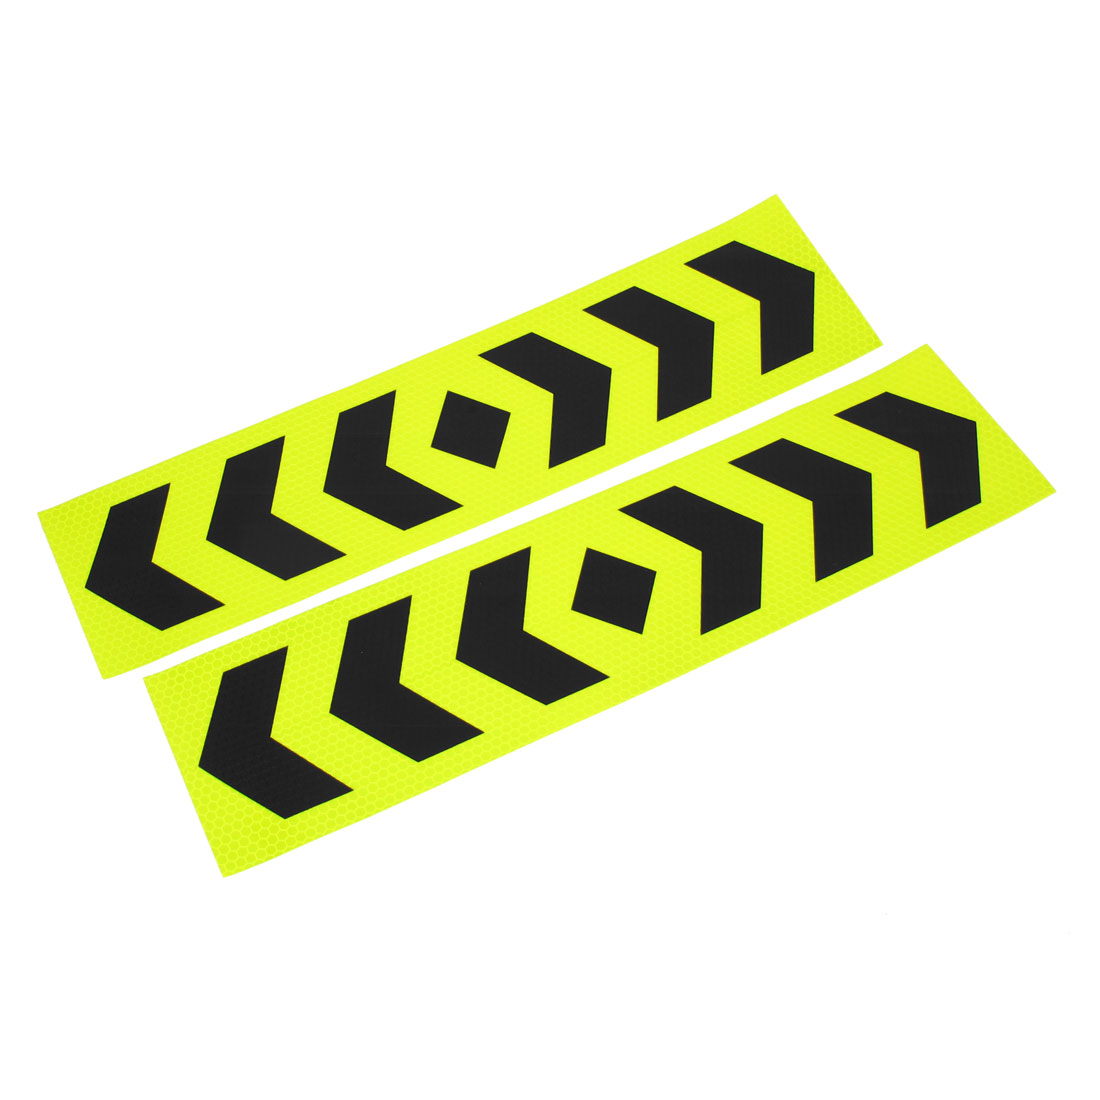 2 Pcs Car Decoration Shiny Green Black Arrows Print Reflected Stickers 40cm x 10cm